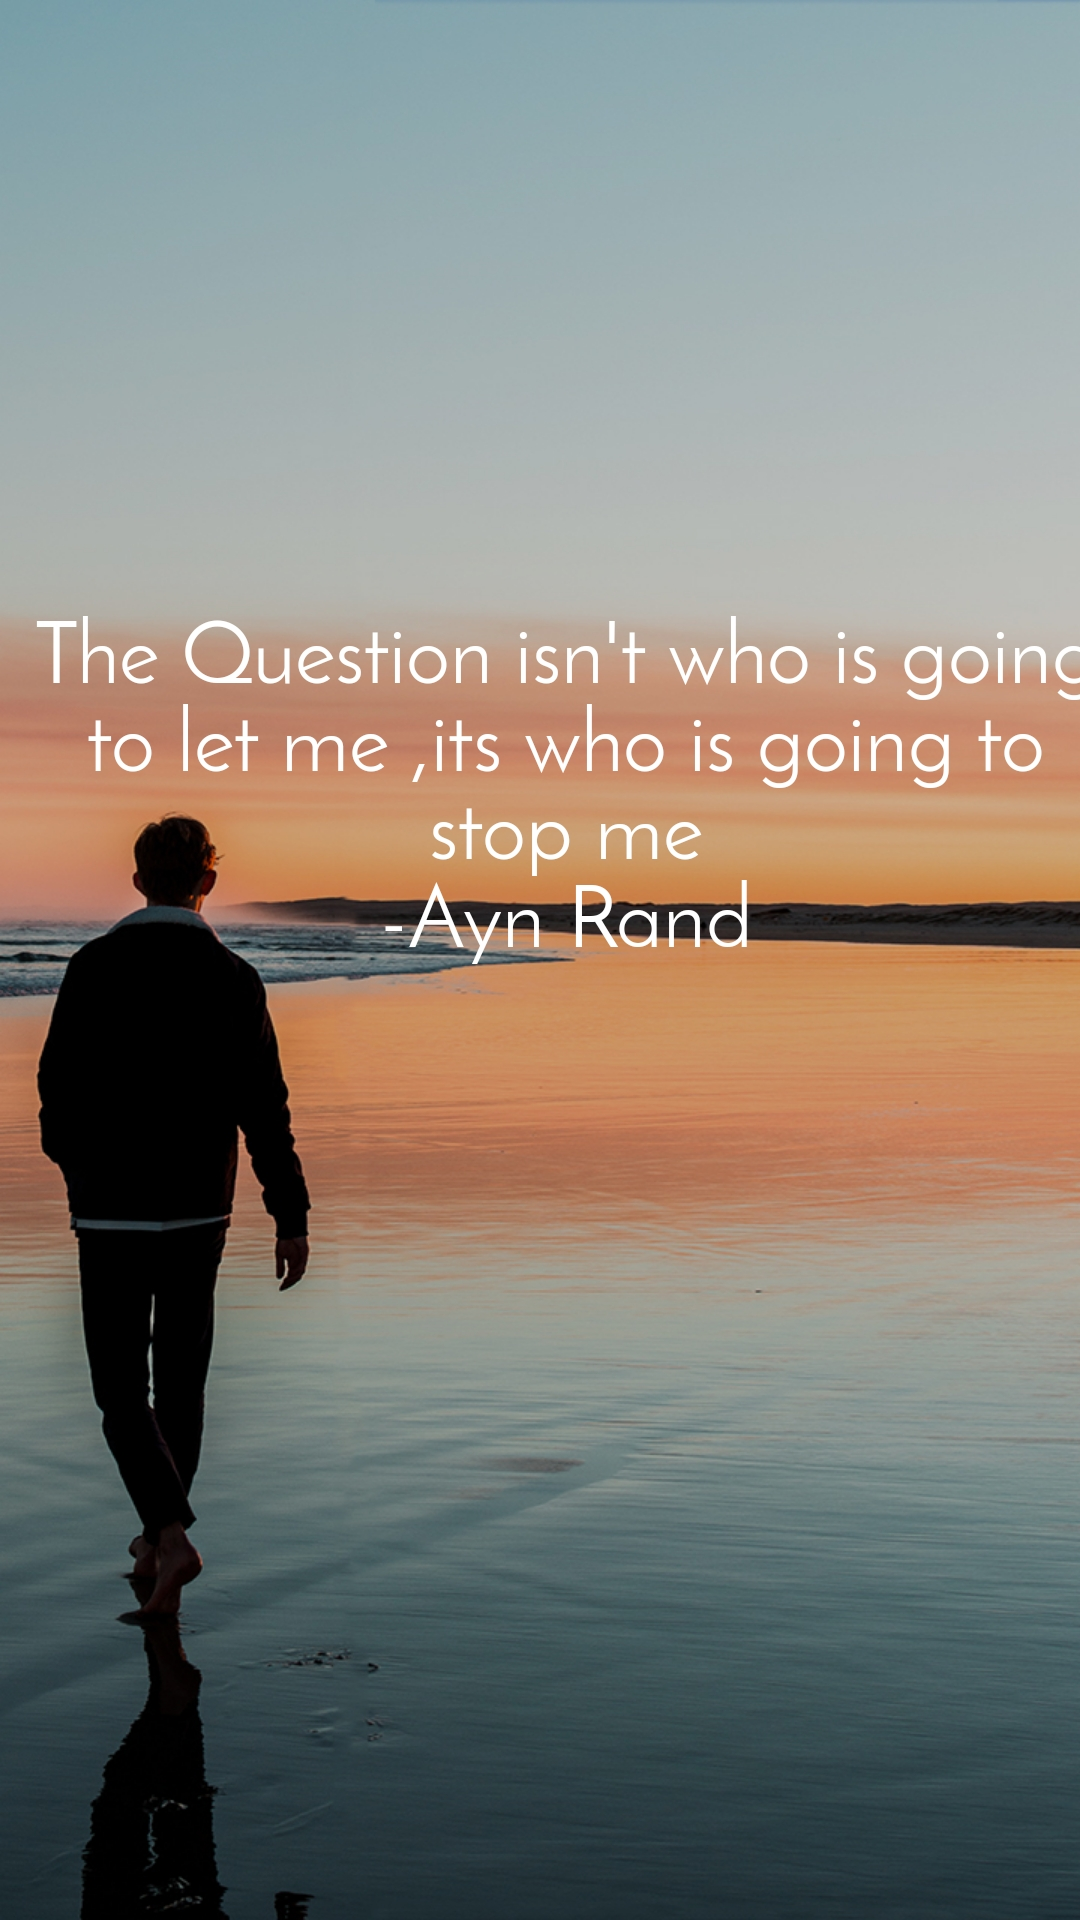 Alone  The Question isn't who is going to let me ,its who is going to stop me -Ayn Rand